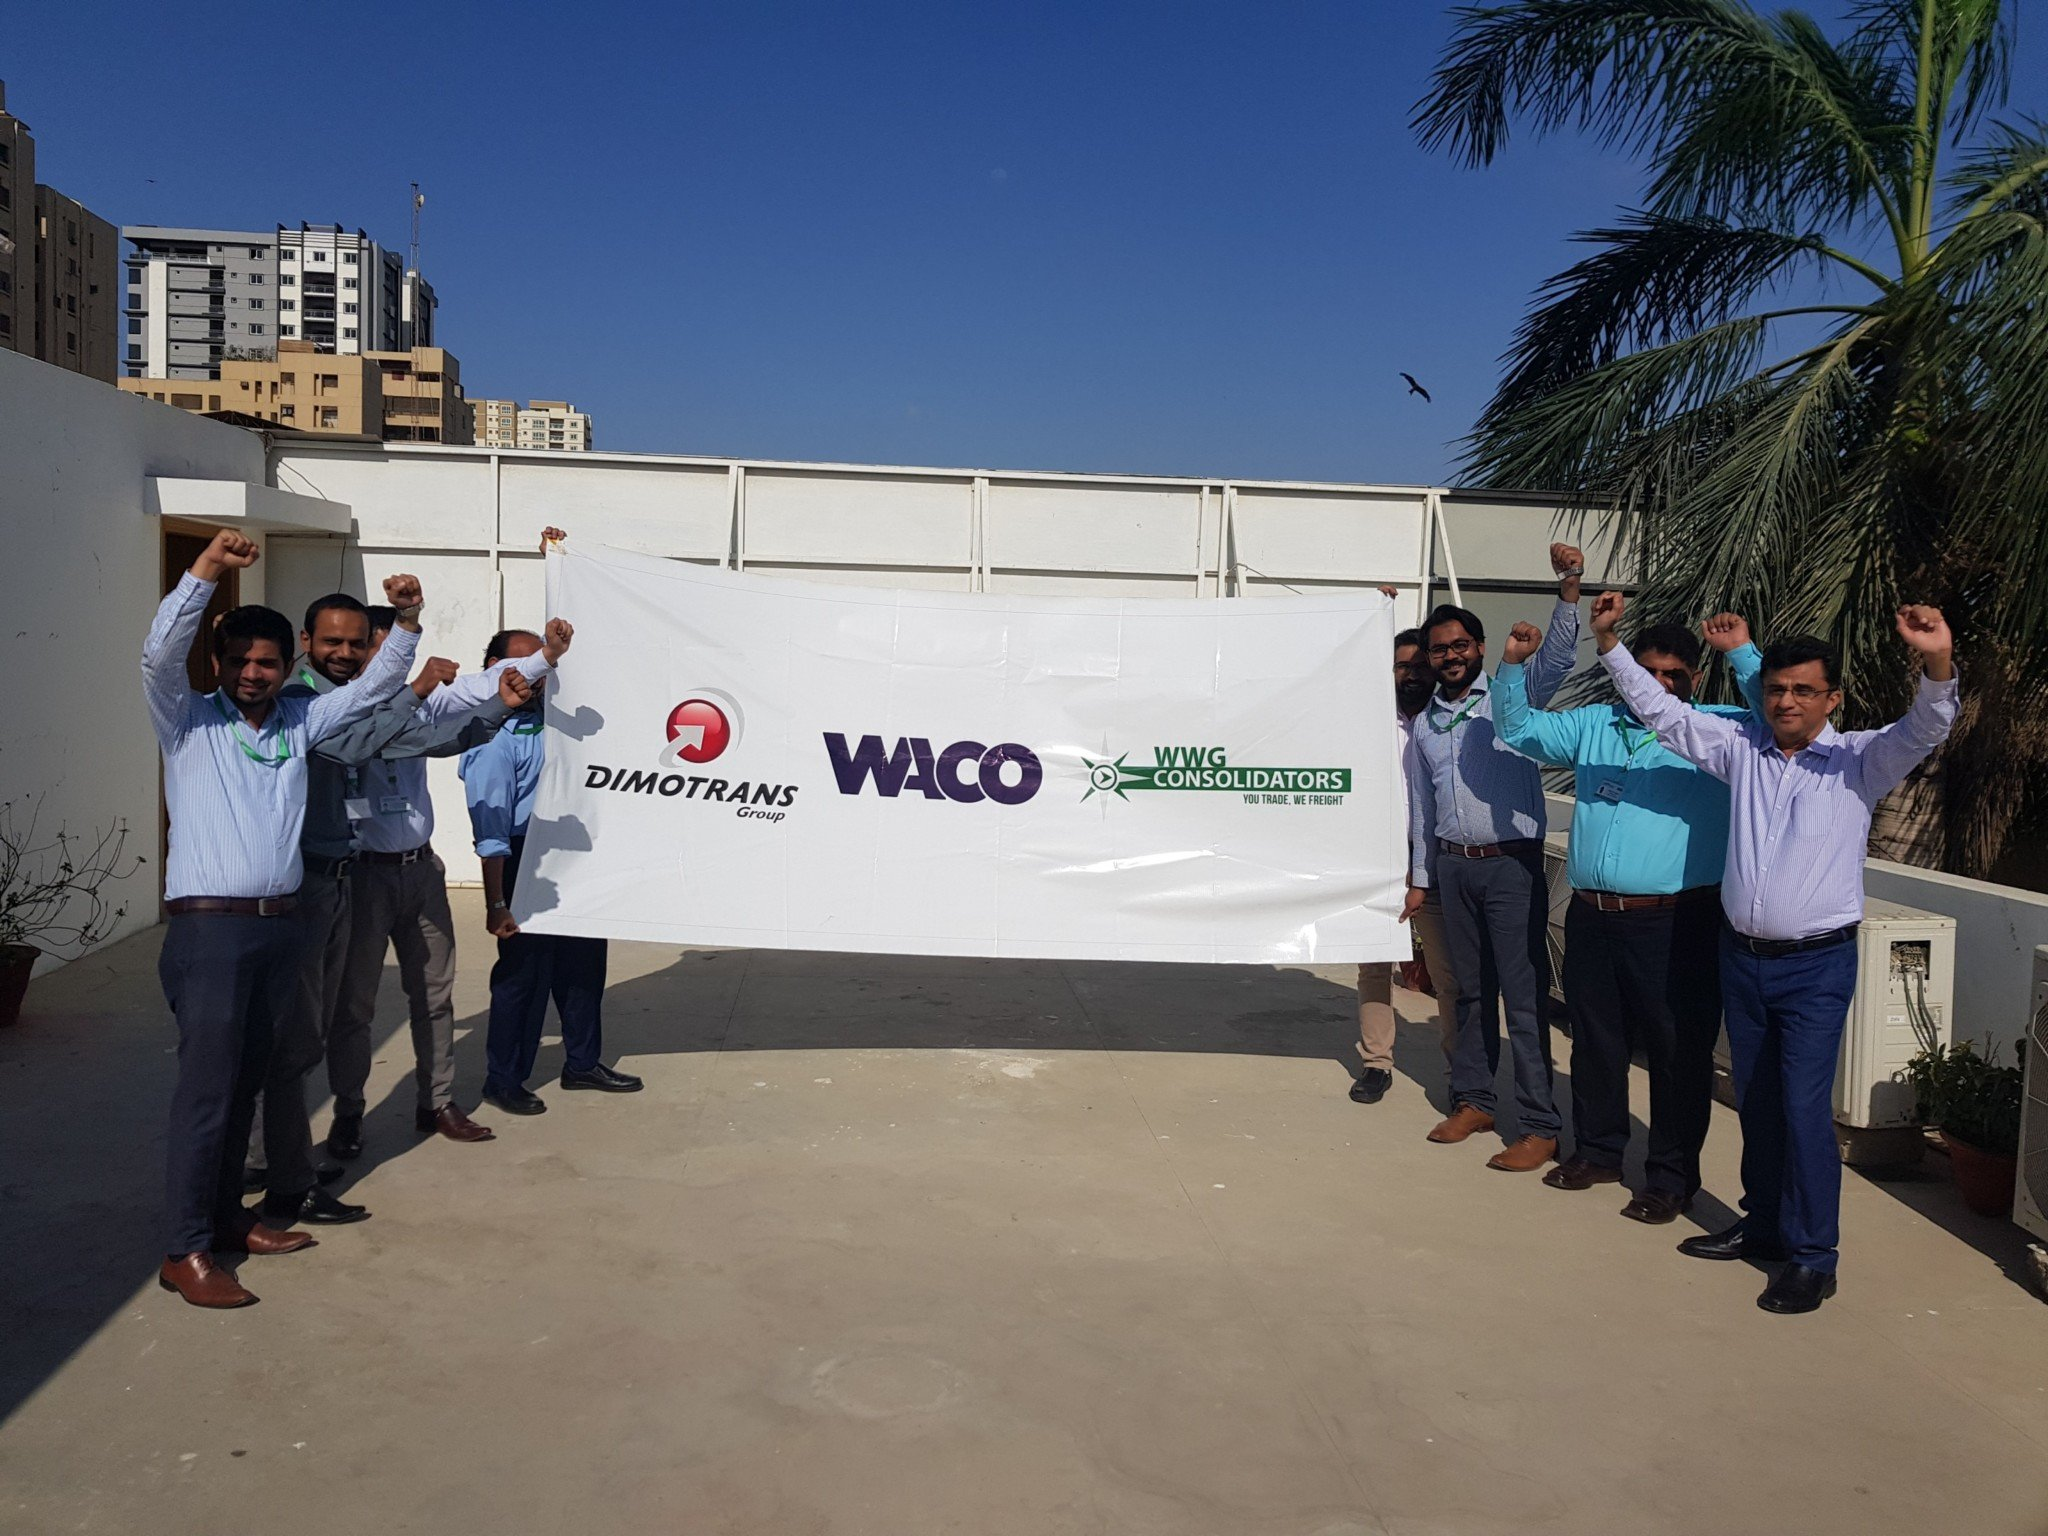 WACO Members Join Forces to Transport Replacement Jet Engines to Pakistan